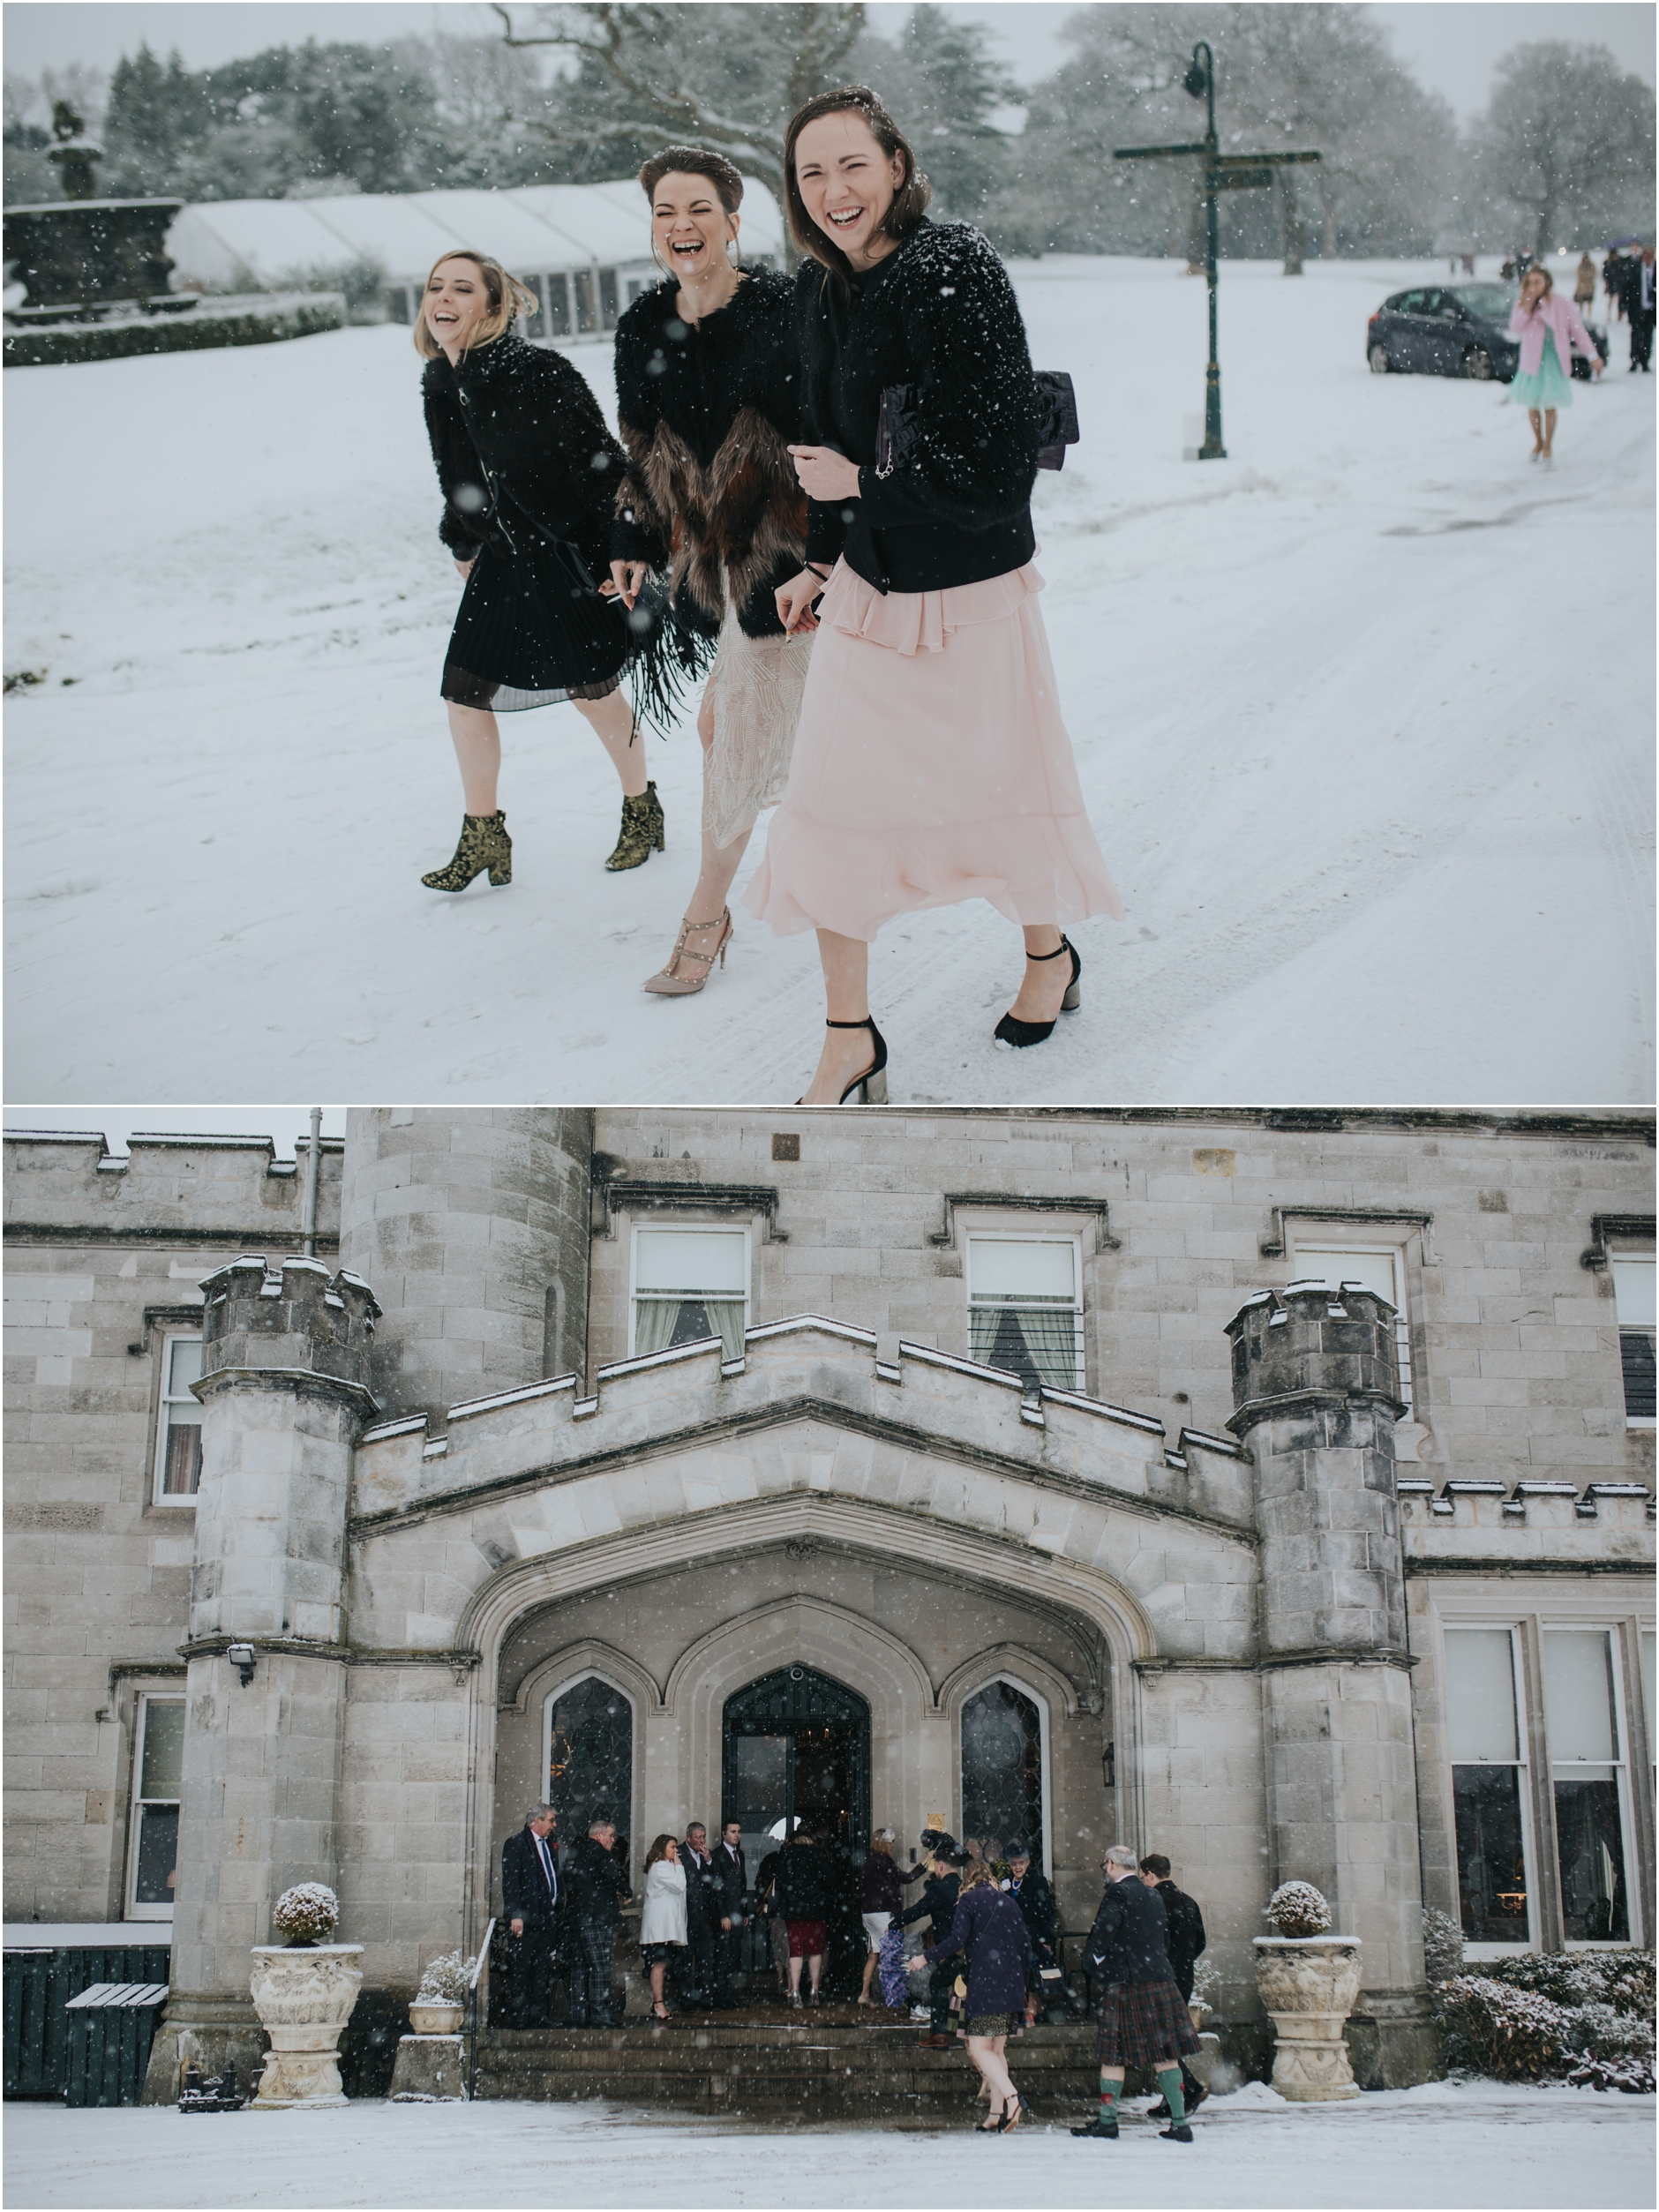 dundas castle wedding at winter in the snow, guests arriving